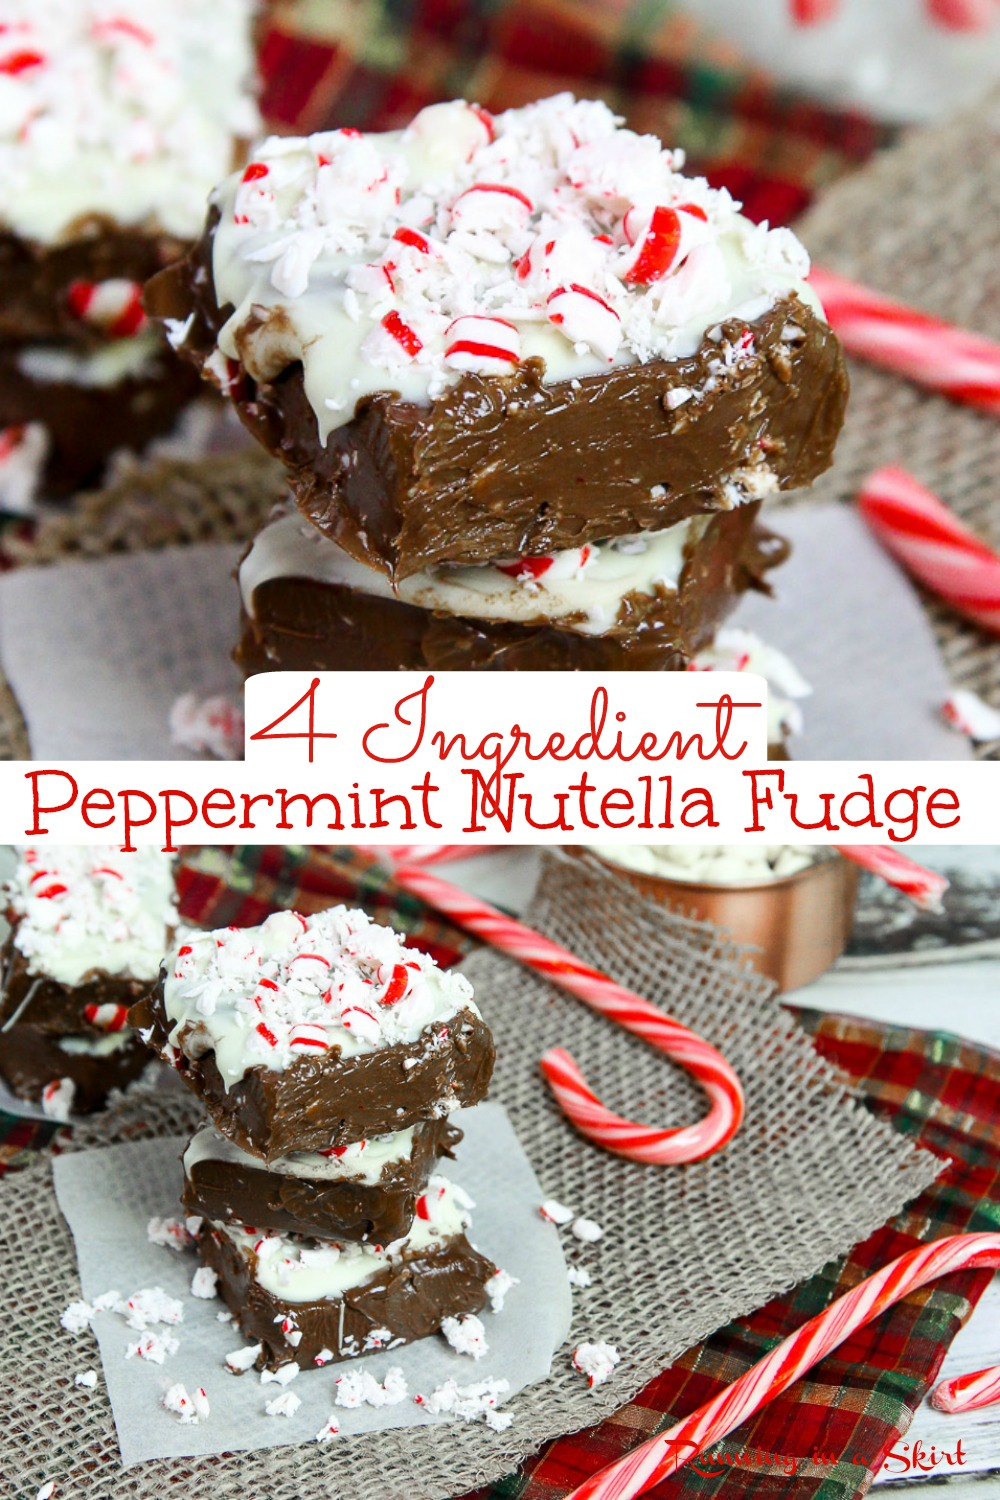 Peppermint No Bake Nutella Fudge recipe - Only 4 Ingredients! An easy No Bake Peppermint Fudge with nutella, candy cane and a white chocolate layer topping. Includes how to make instructions for No Bake Fudge. Healthy swap - made with coconut oil and without condensed milk. The best holiday freezer fudge! Vegetarian, Gluten Free/ Runing in a Skirt #Christmas #fudge #peppermint #healthyliving #recipe via @juliewunder